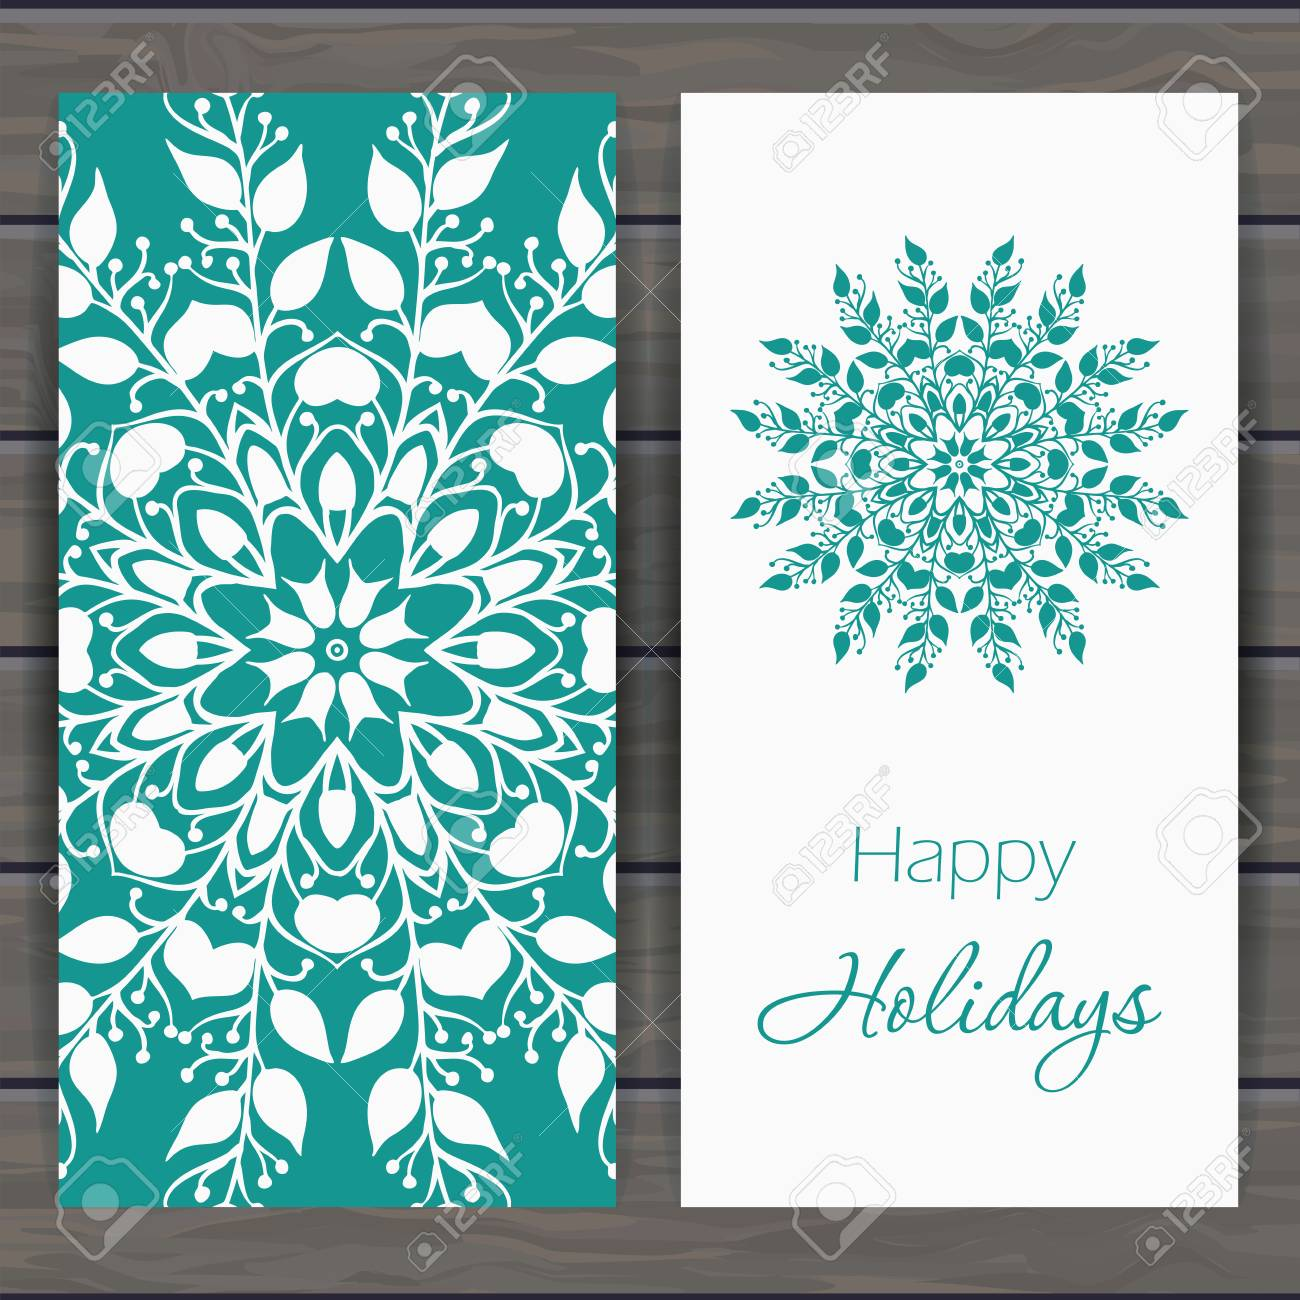 Christmas and new year greeting card with floral snowflake christmas and new year greeting card with floral snowflake design for greeting cards fabric m4hsunfo